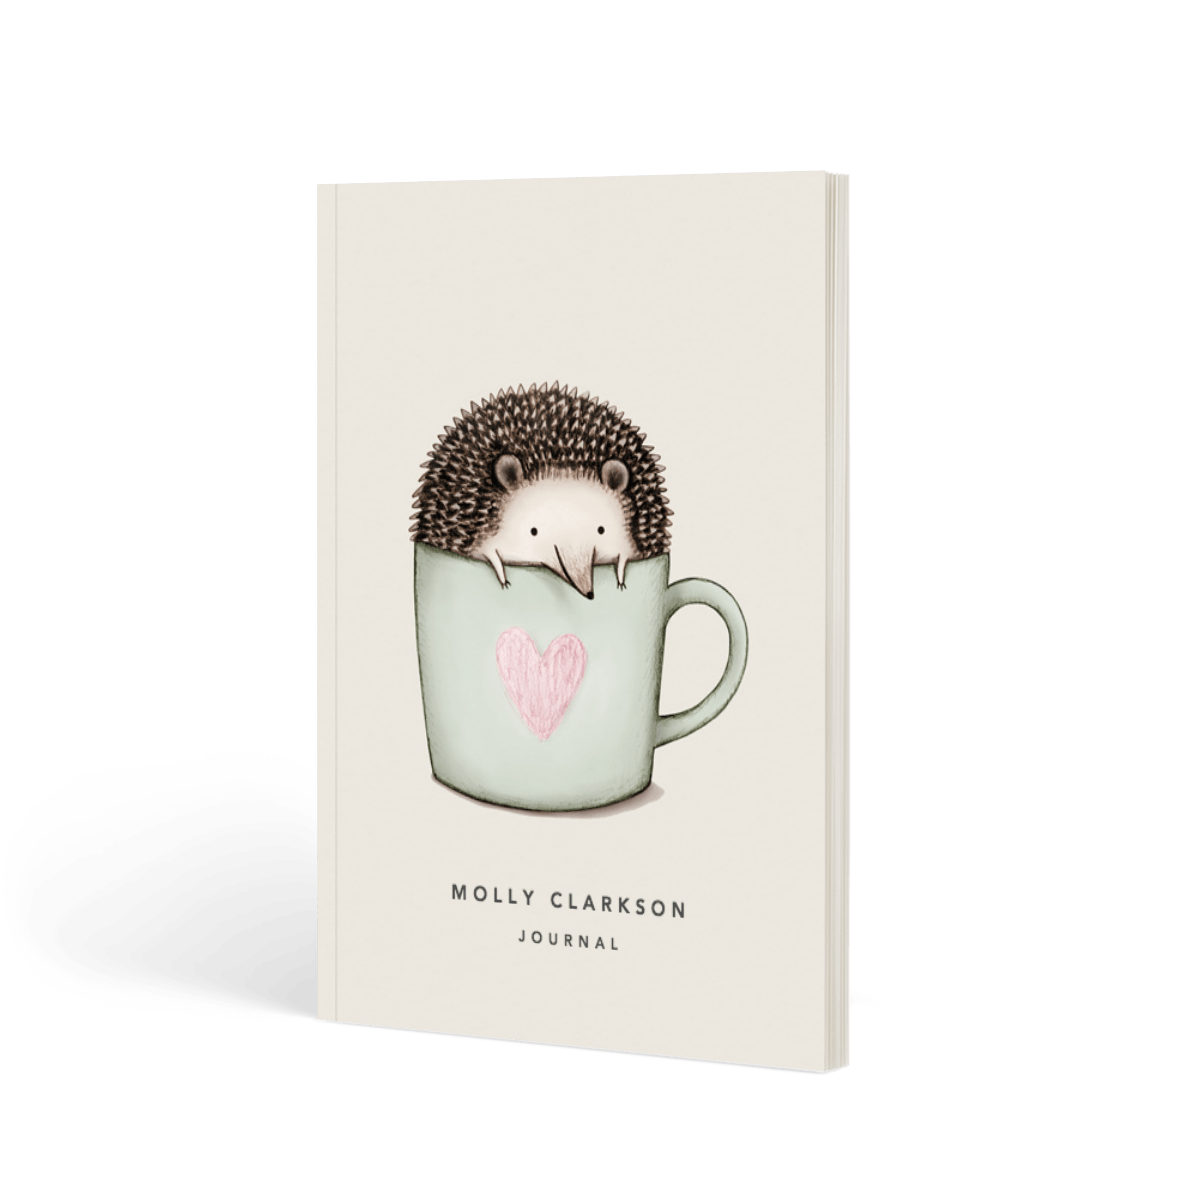 Https%3a%2f%2fwww.papier.com%2fproduct image%2f14473%2f6%2fhedgehog in a mug 3862 front 1534501866.png?ixlib=rb 1.1